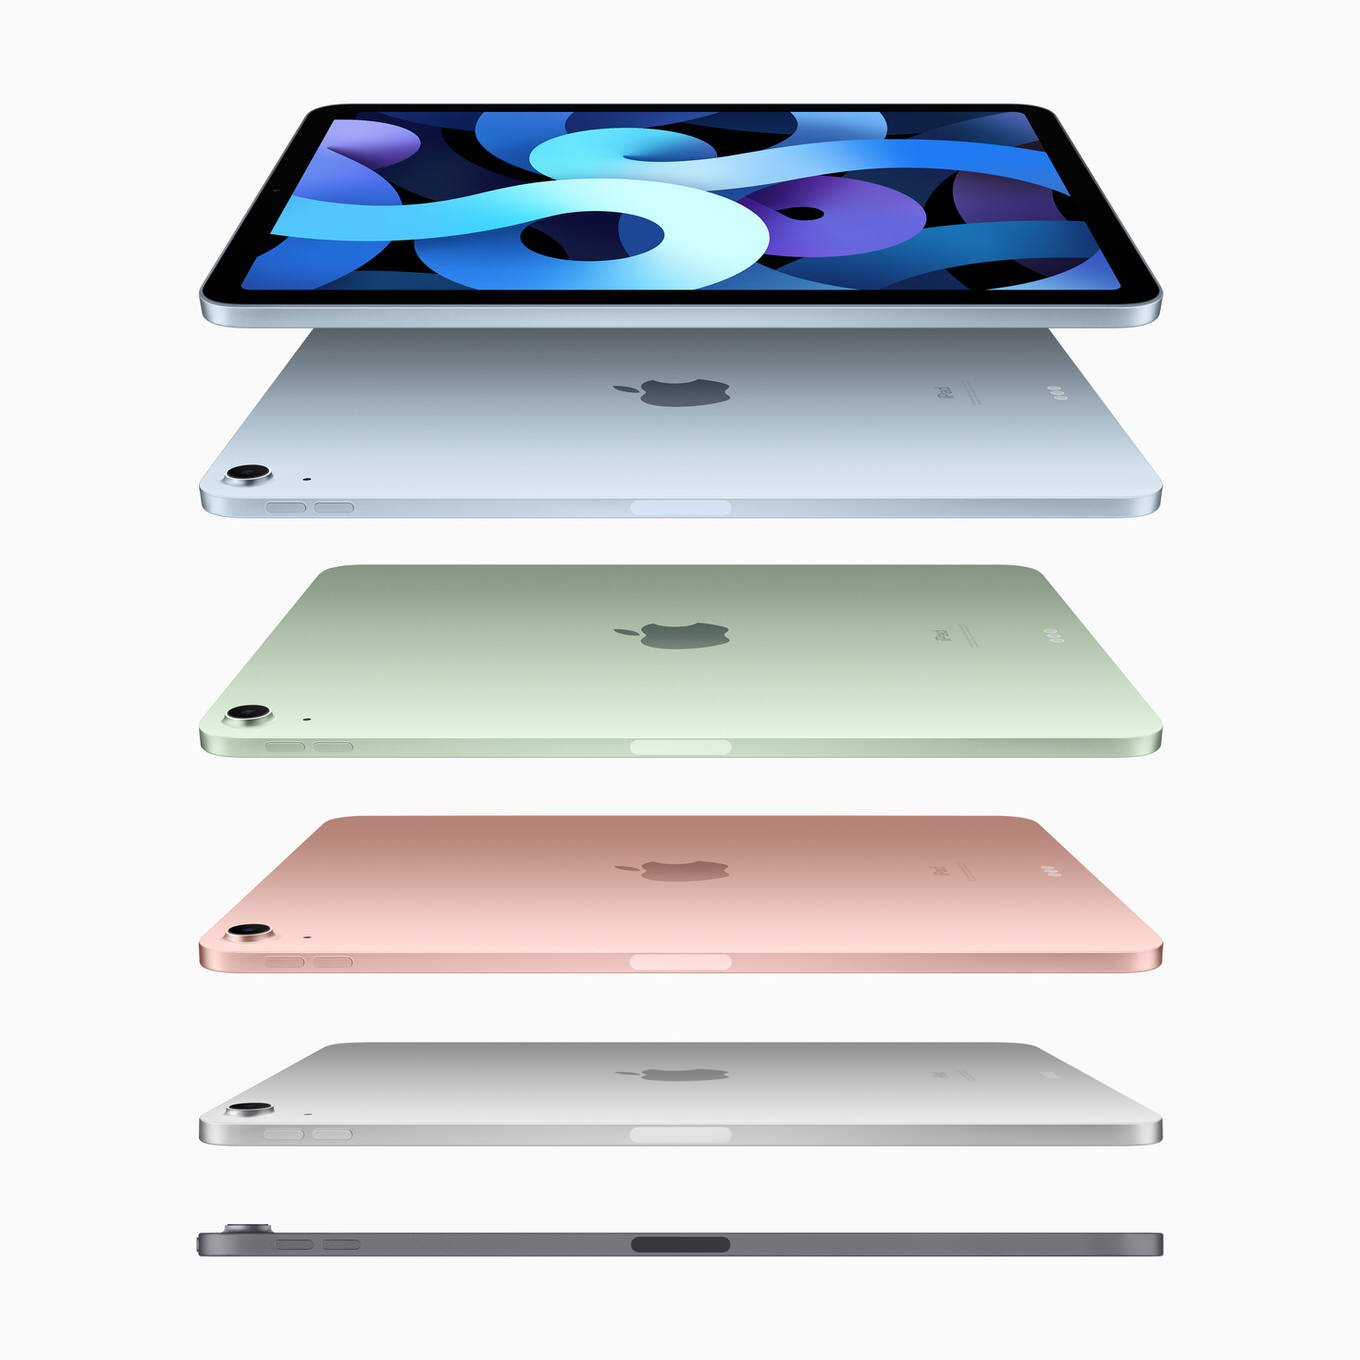 apple_new-ipad-air_new-design_09152020